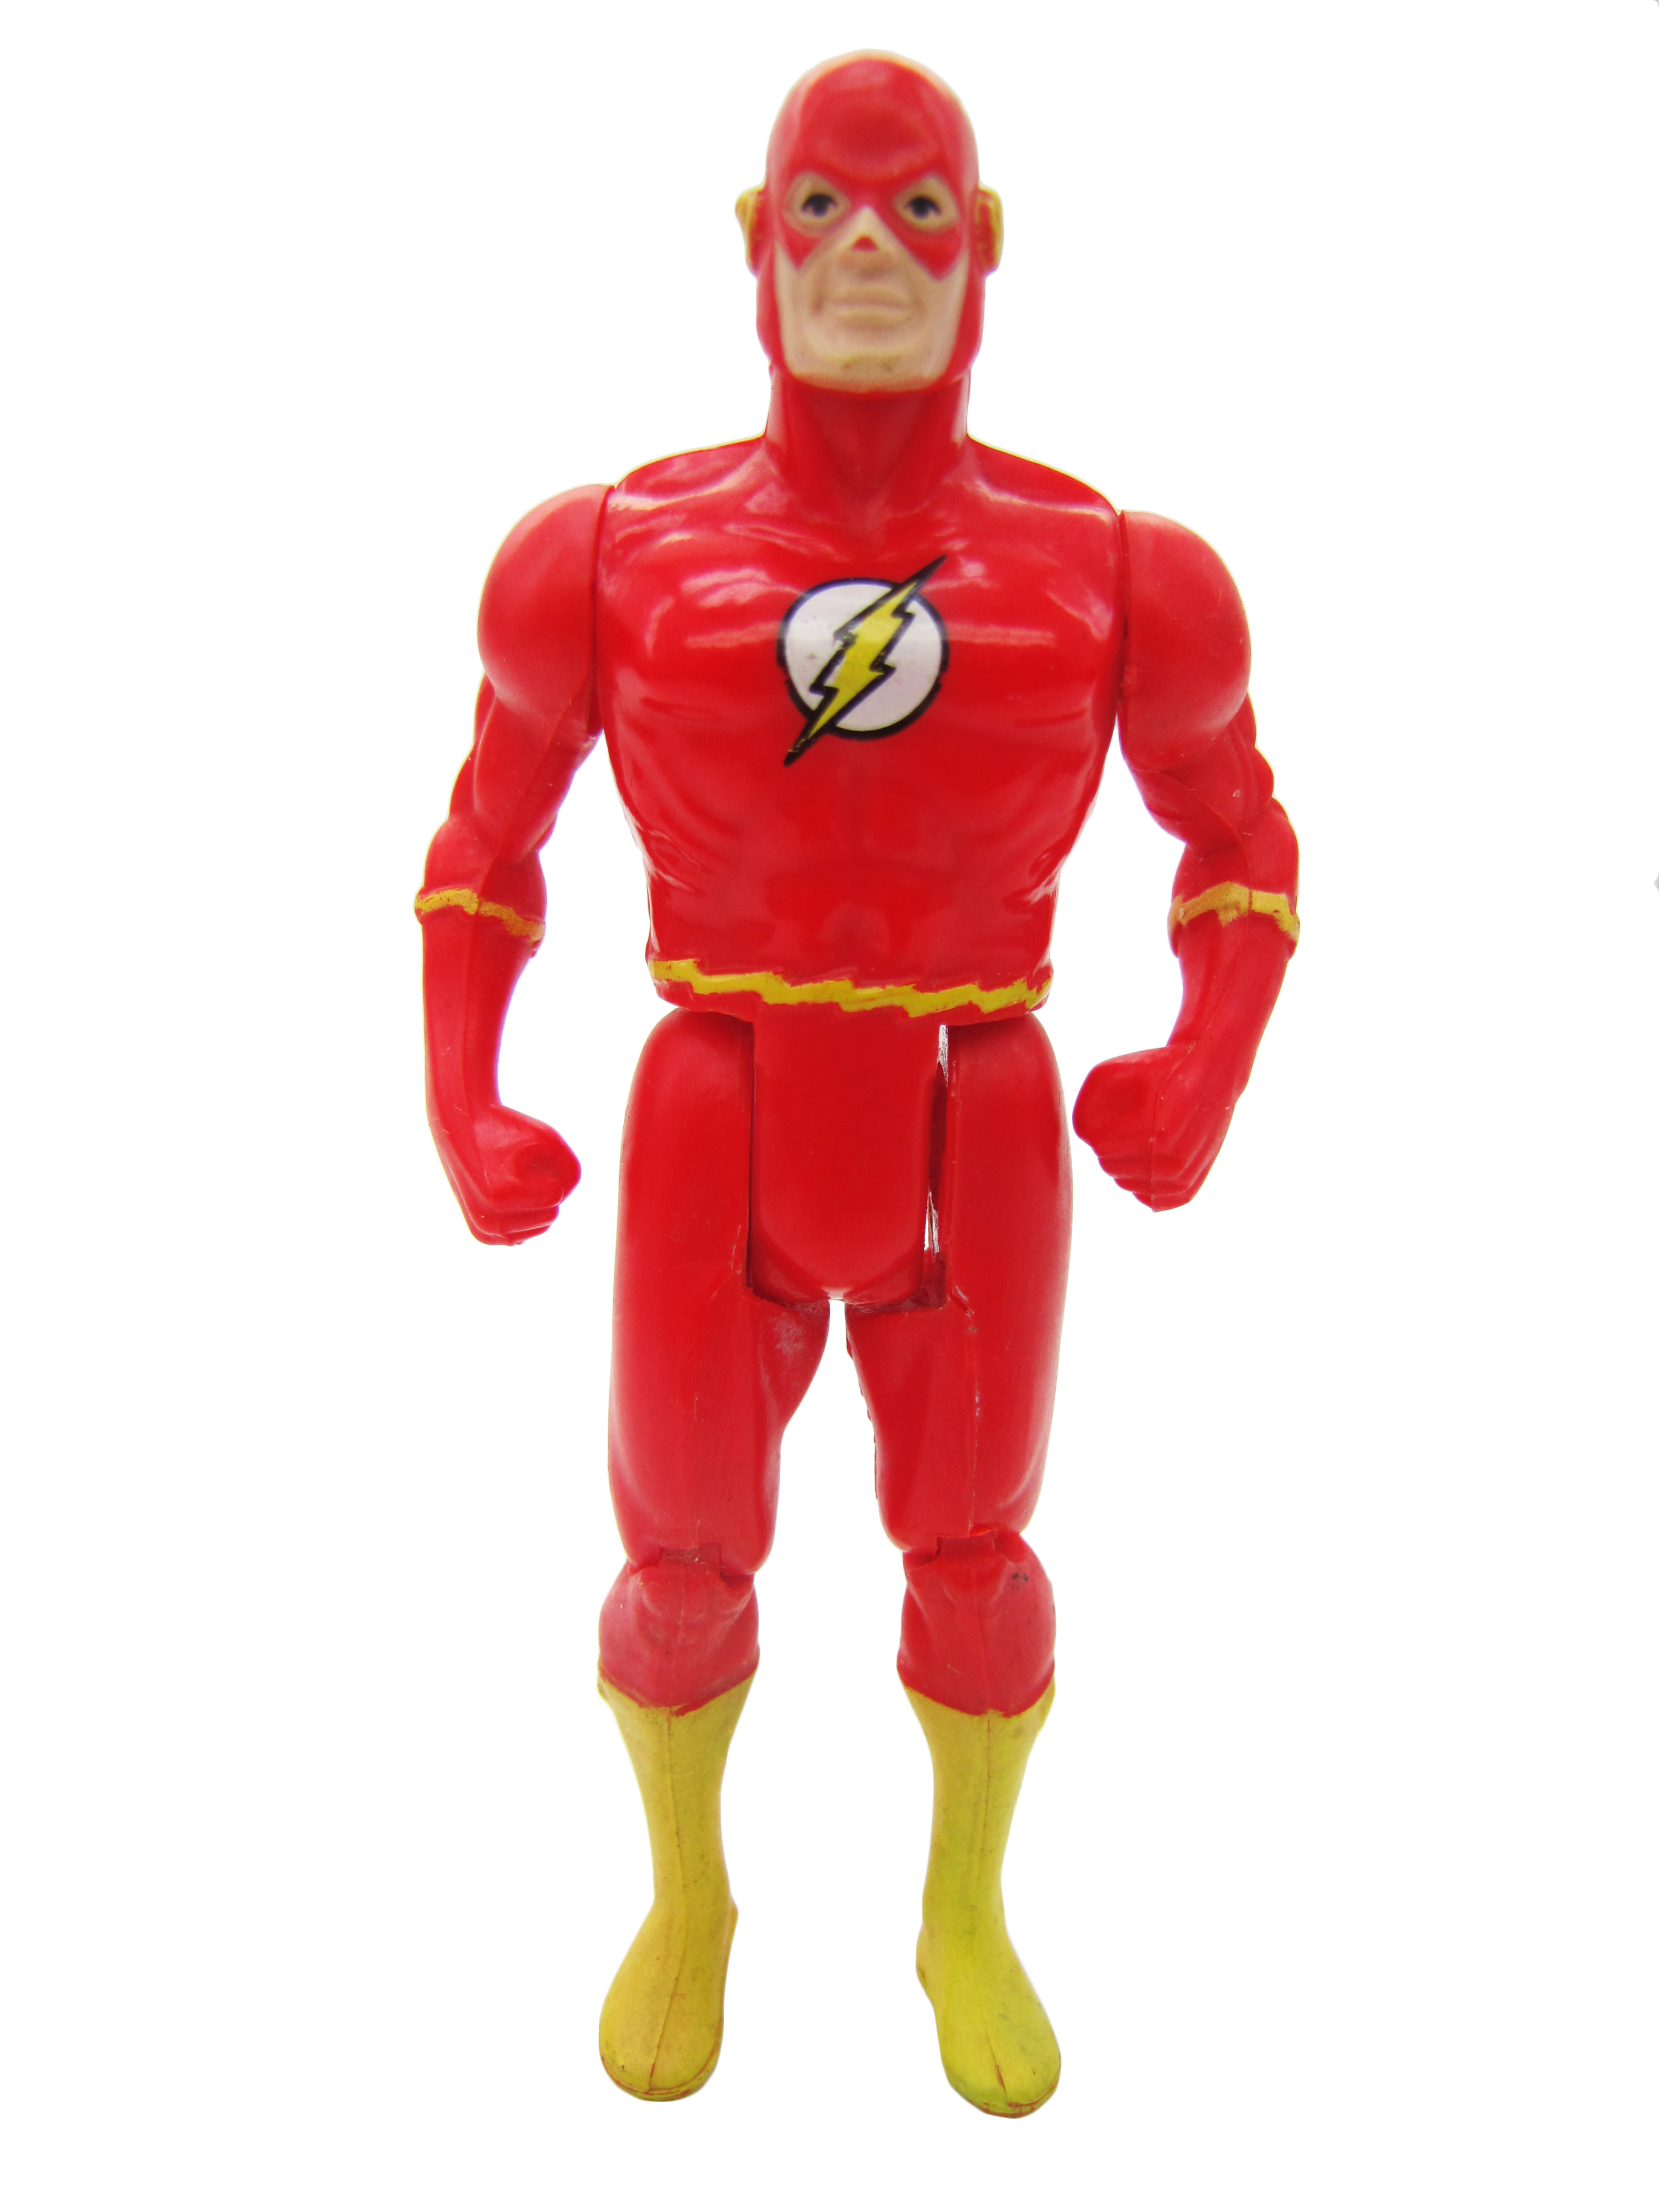 1984 DC Super Powers Collection FLASH Good Condition